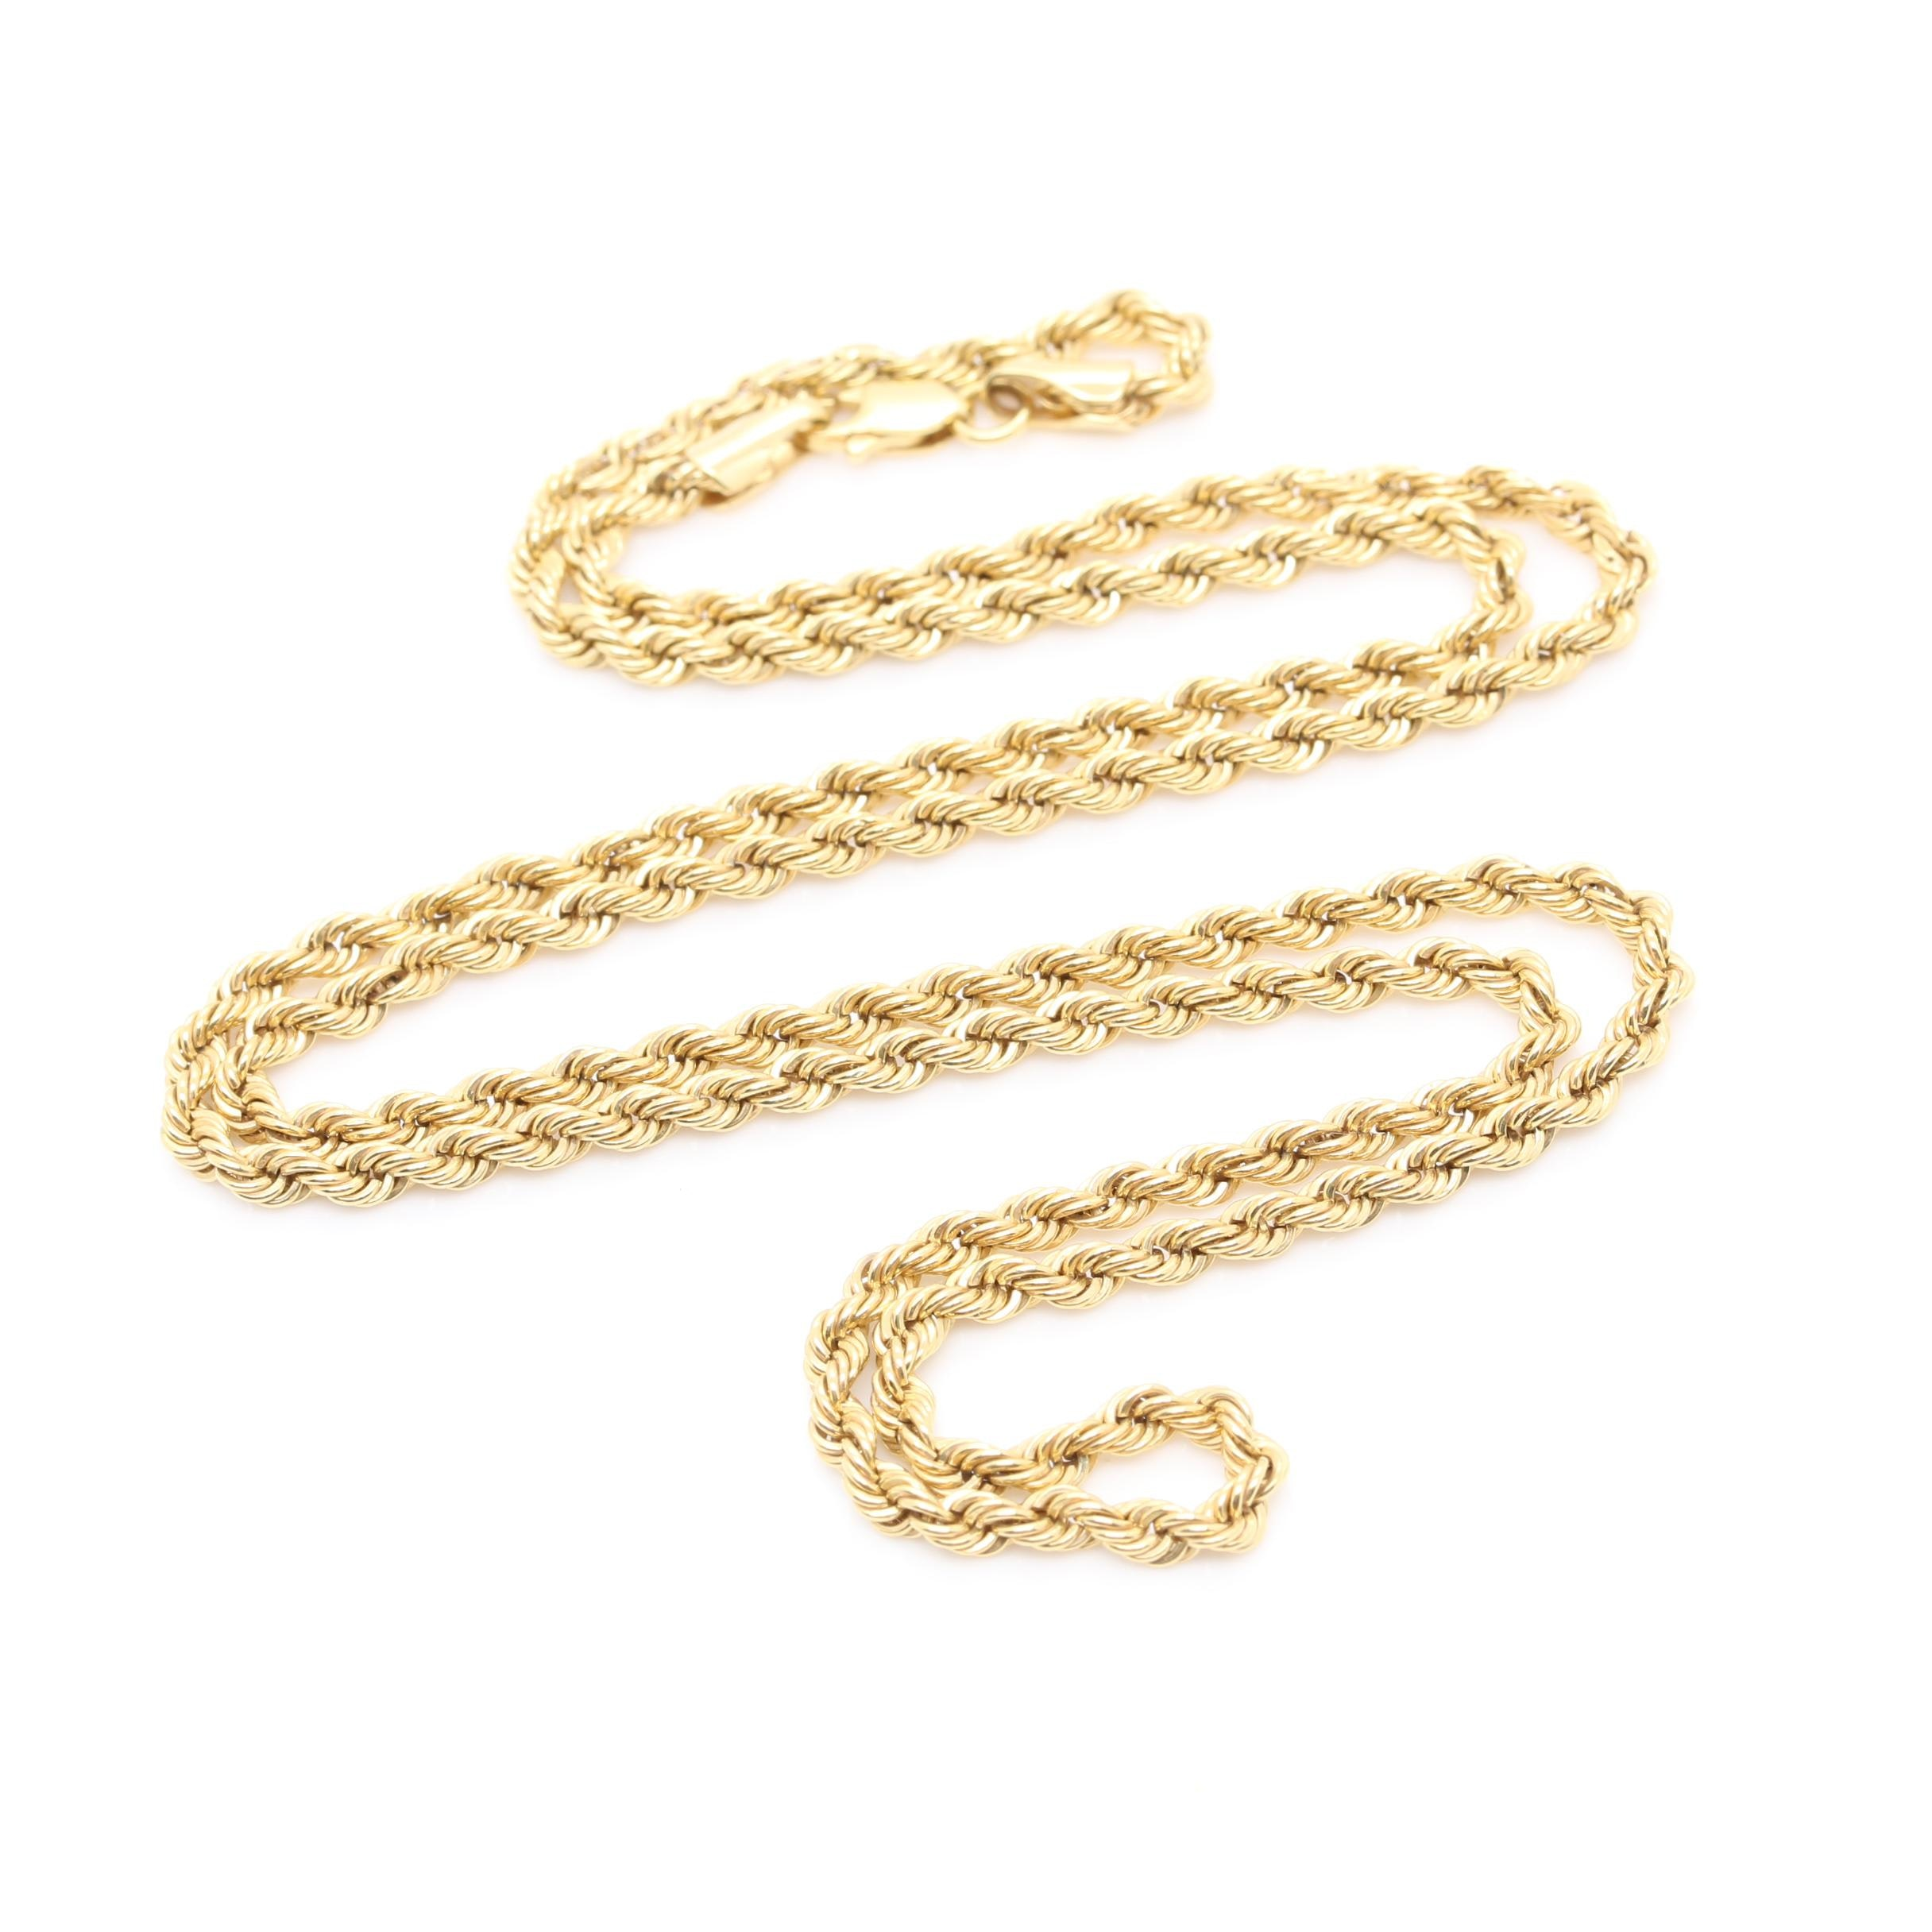 10K Yellow Gold Twisted Rope Chain Necklace